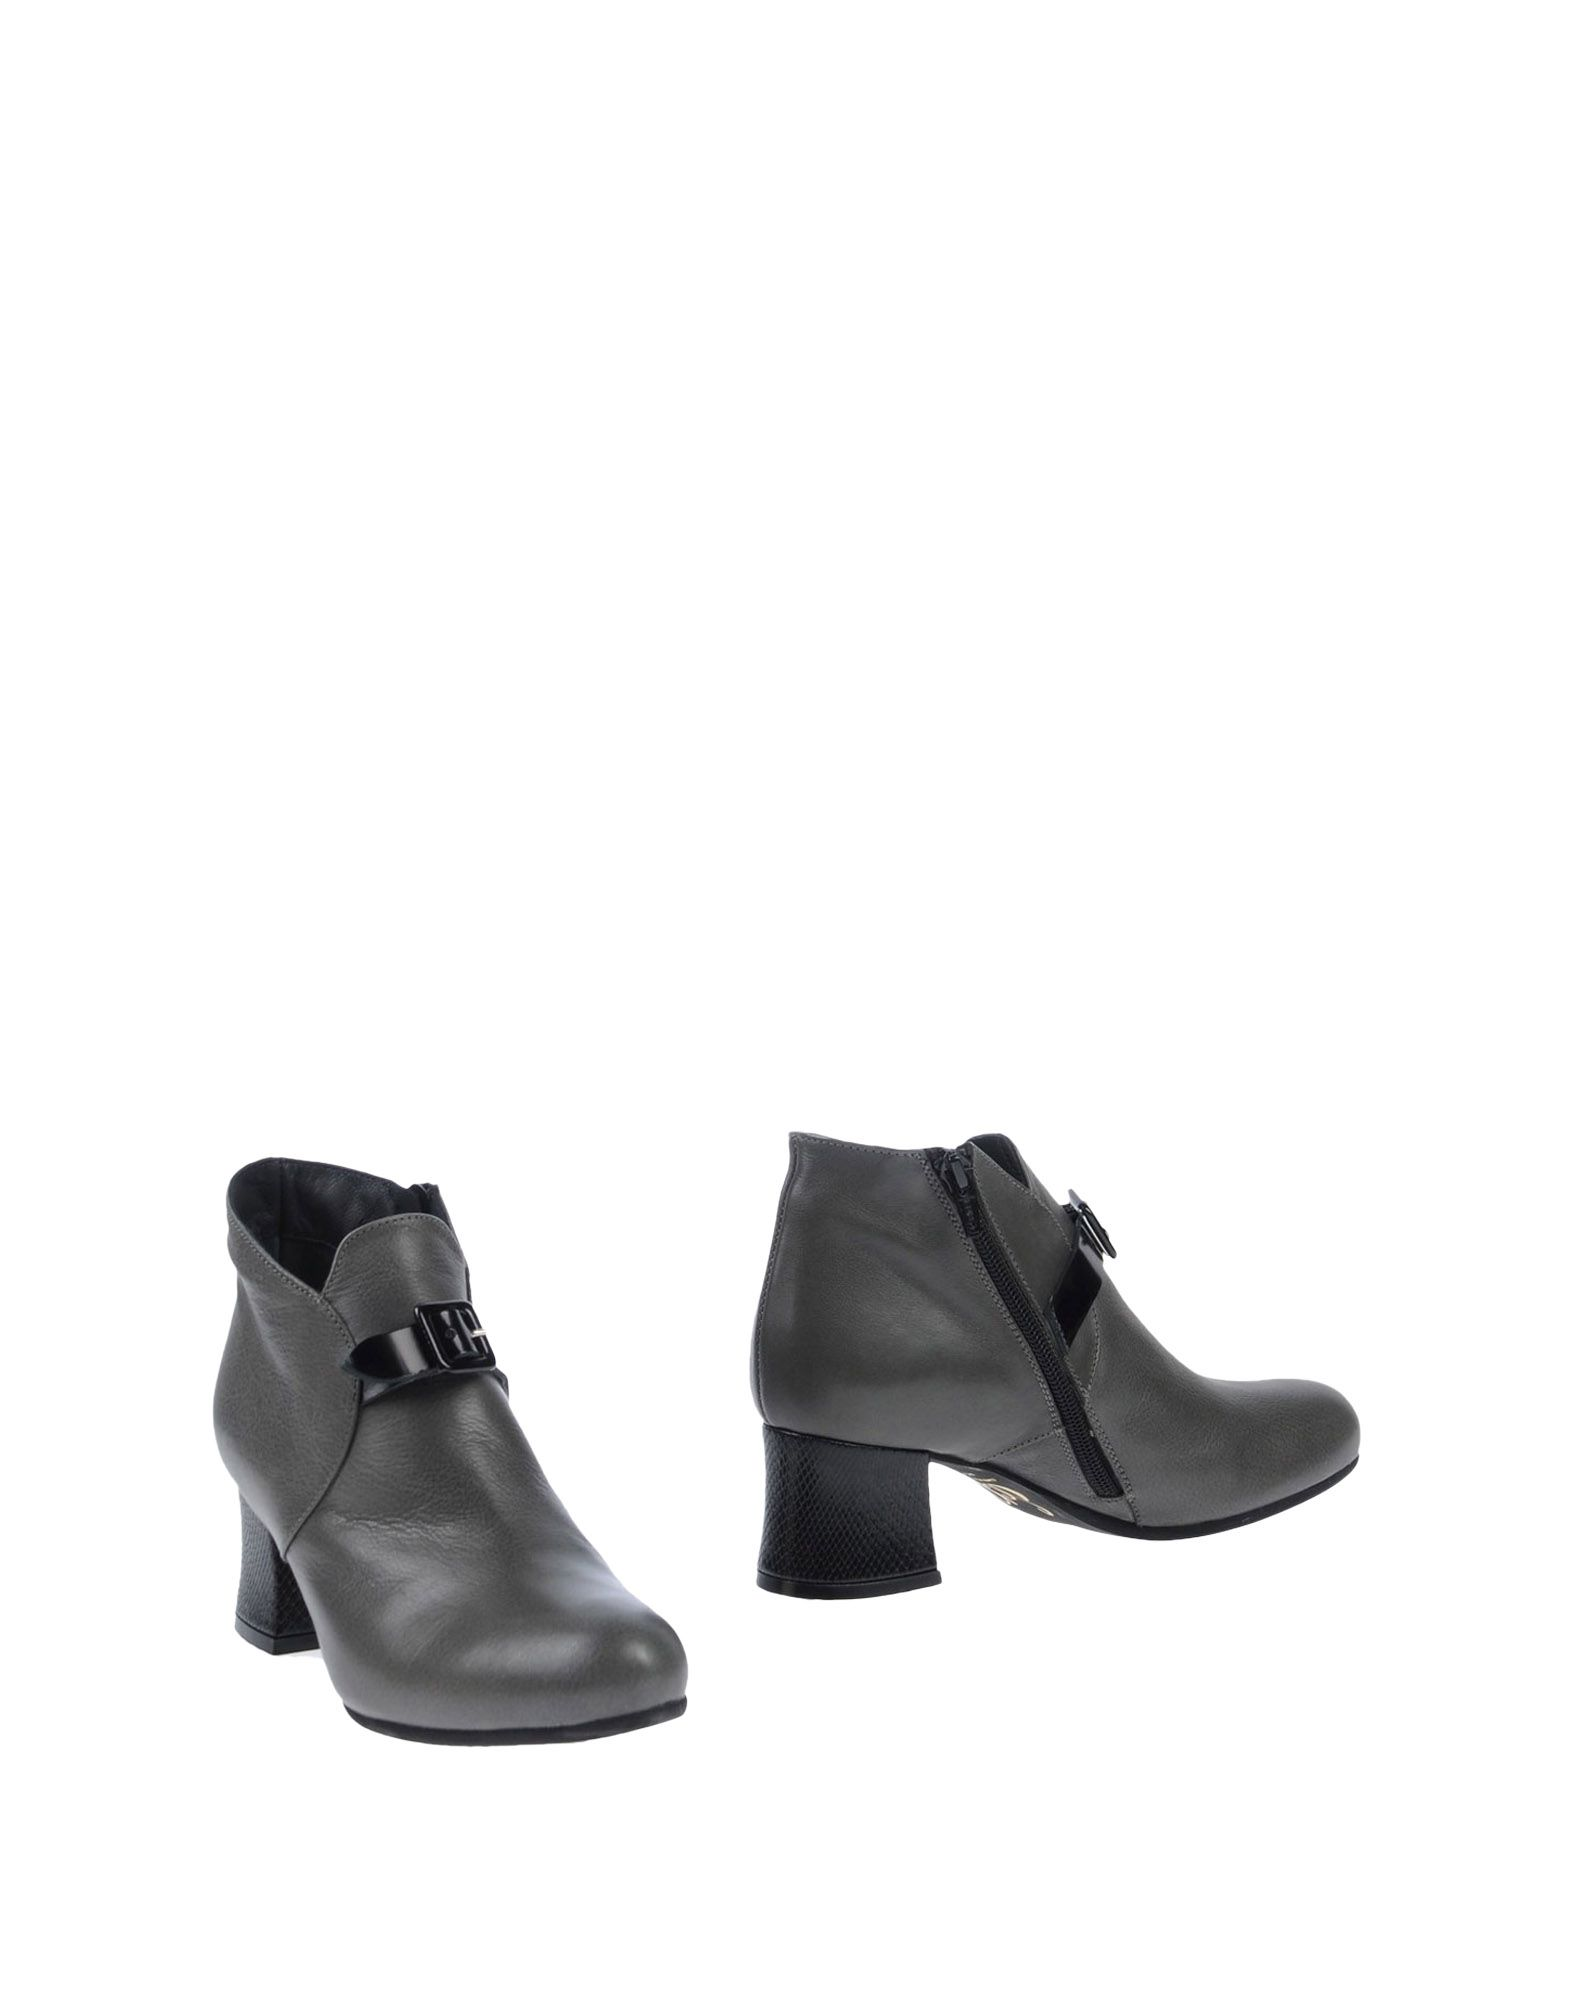 sgn giancarlo paoli bottines - femmes sgn sgn sgn giancarlo paoli bottines en ligne sur canada - vp 139d6f